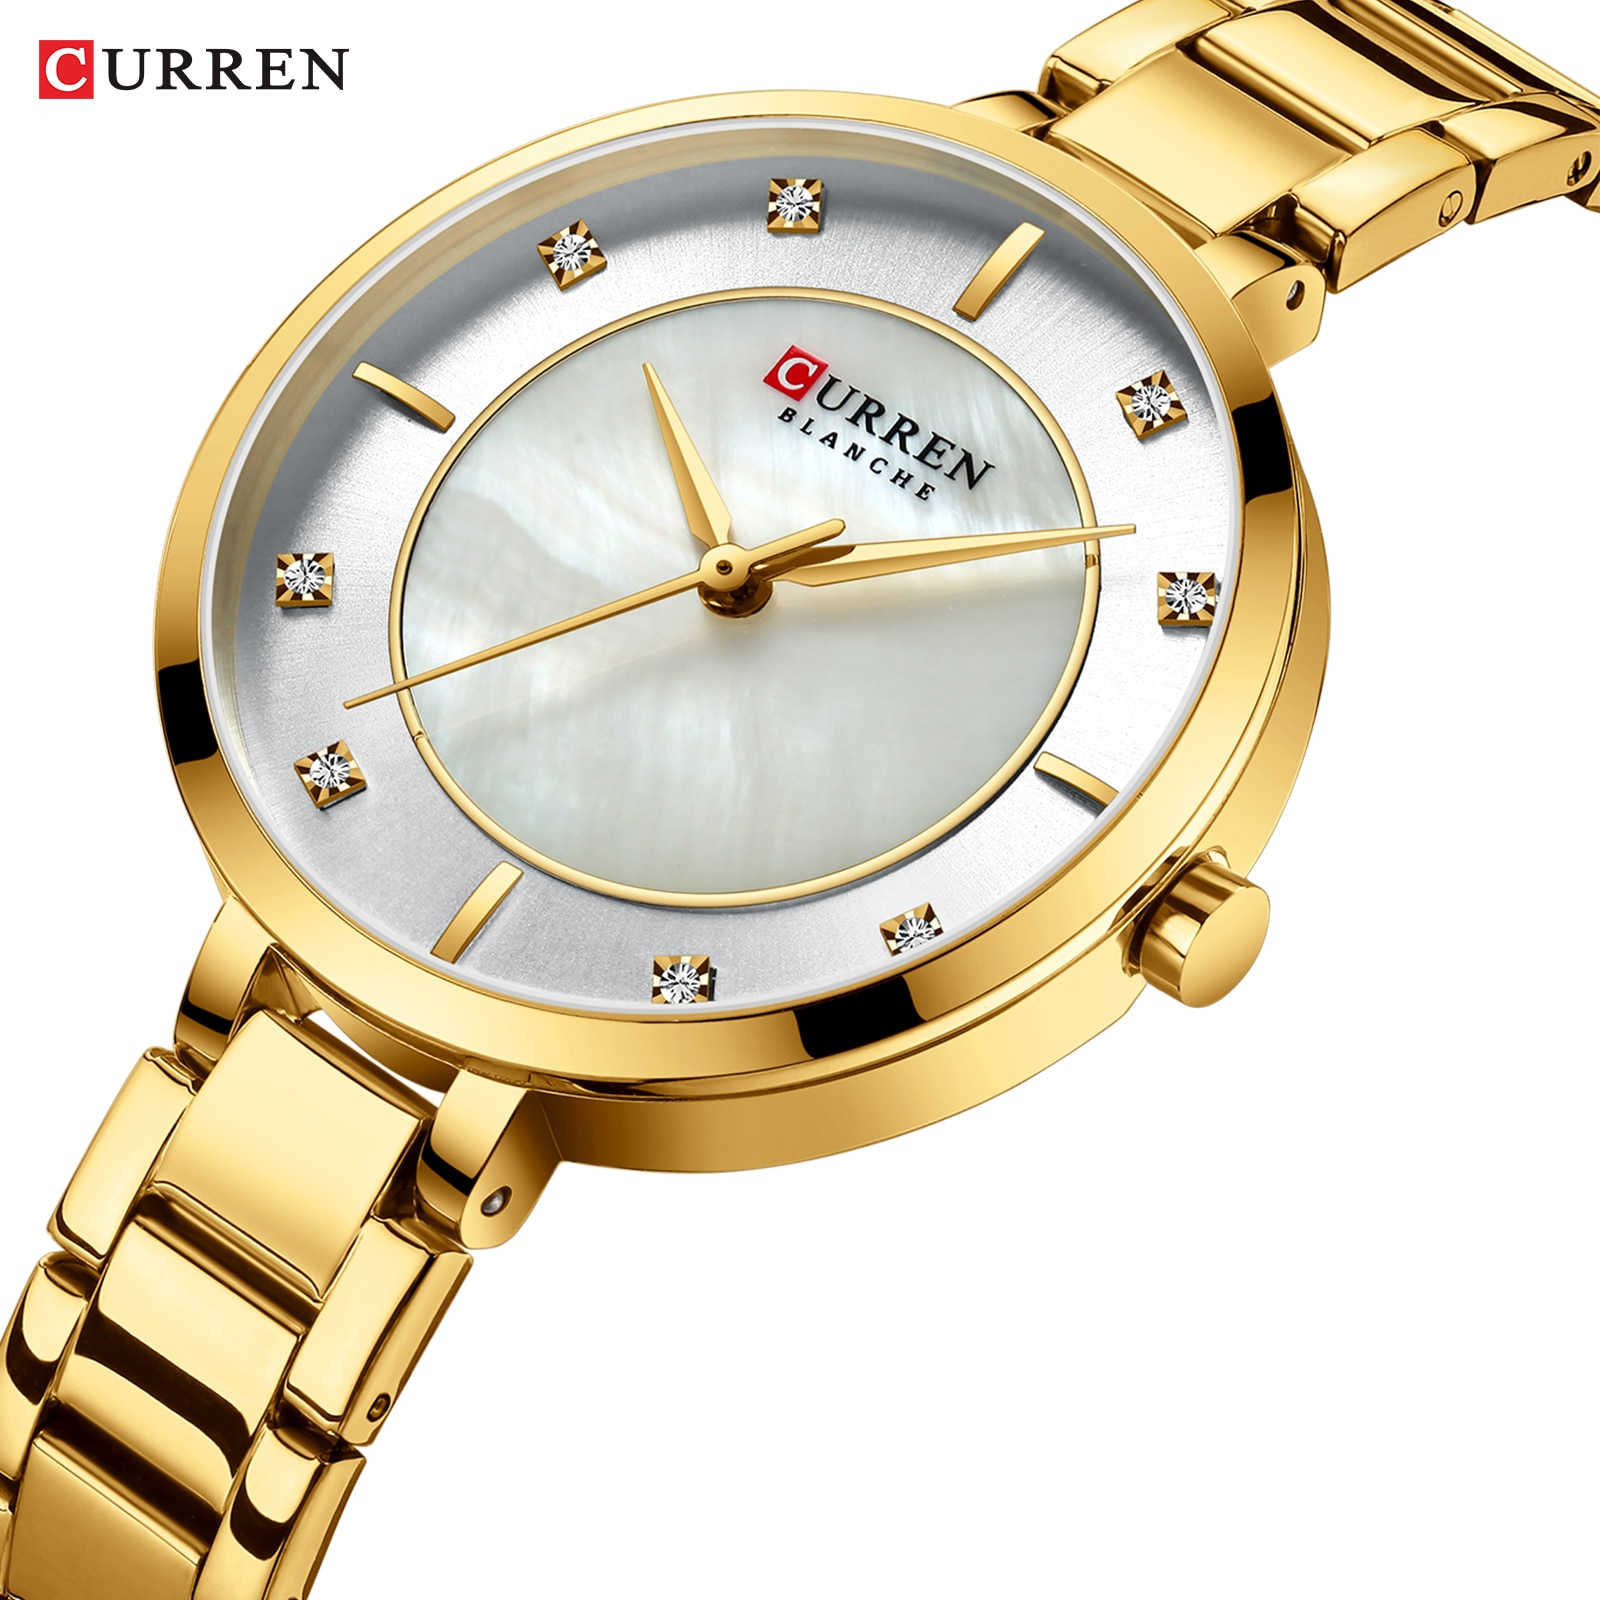 CURREN 2019 Womens Watches Golden Rhinestone Analog Round Quartz Watch Dress Bracelet Chain Waterproof Lady Wristwatch Dropship